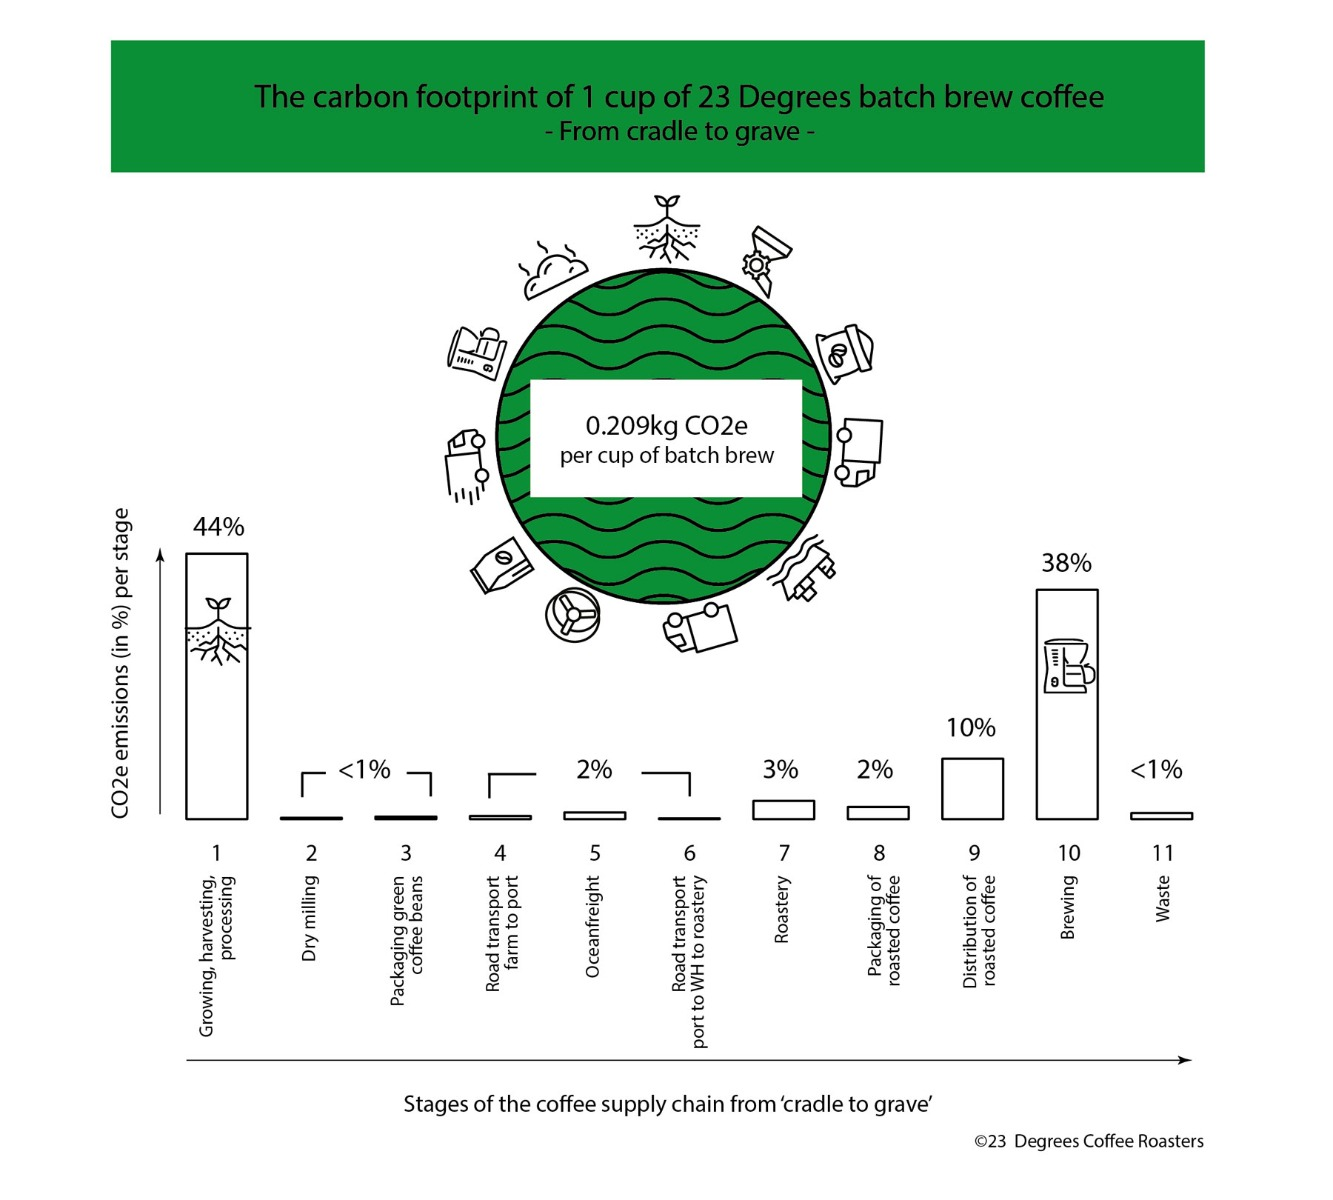 carbon footprint of 1 cup of coffee across the entire coffee supply chain